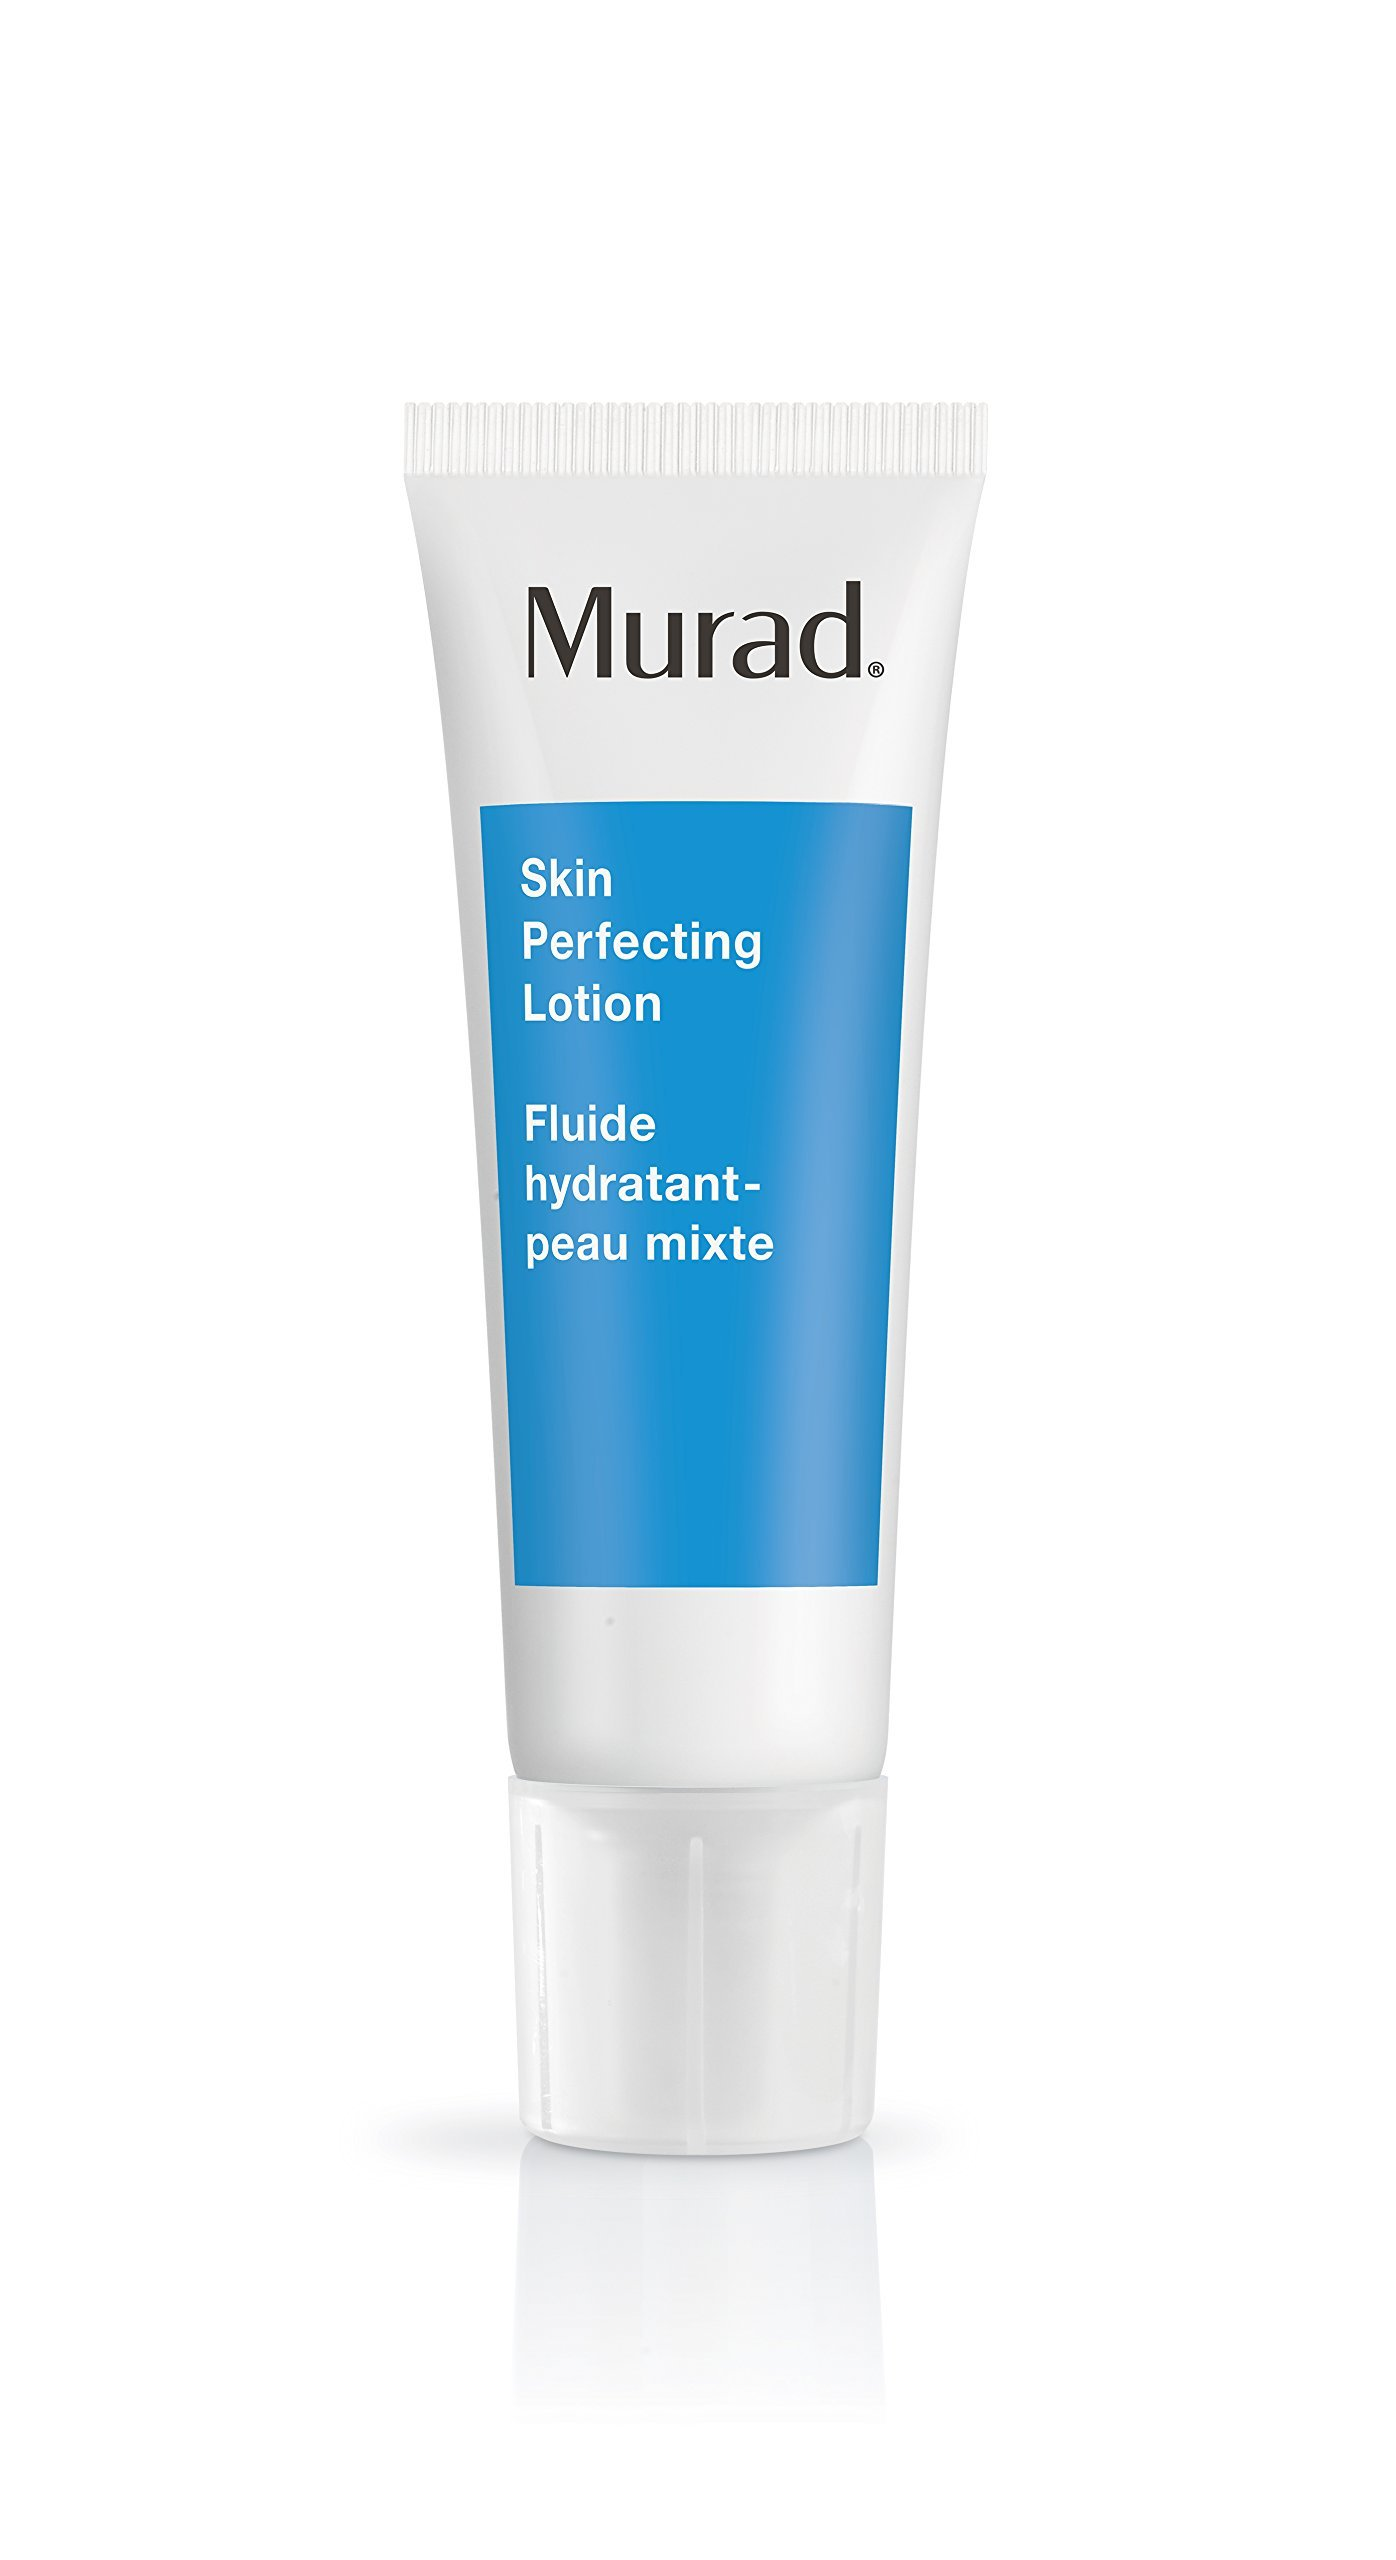 Murad Blemish Spot Treatment Beauty Indonesia Acne Control Skin Perfecting Lotion Step 3 17 Fl Oz Oil